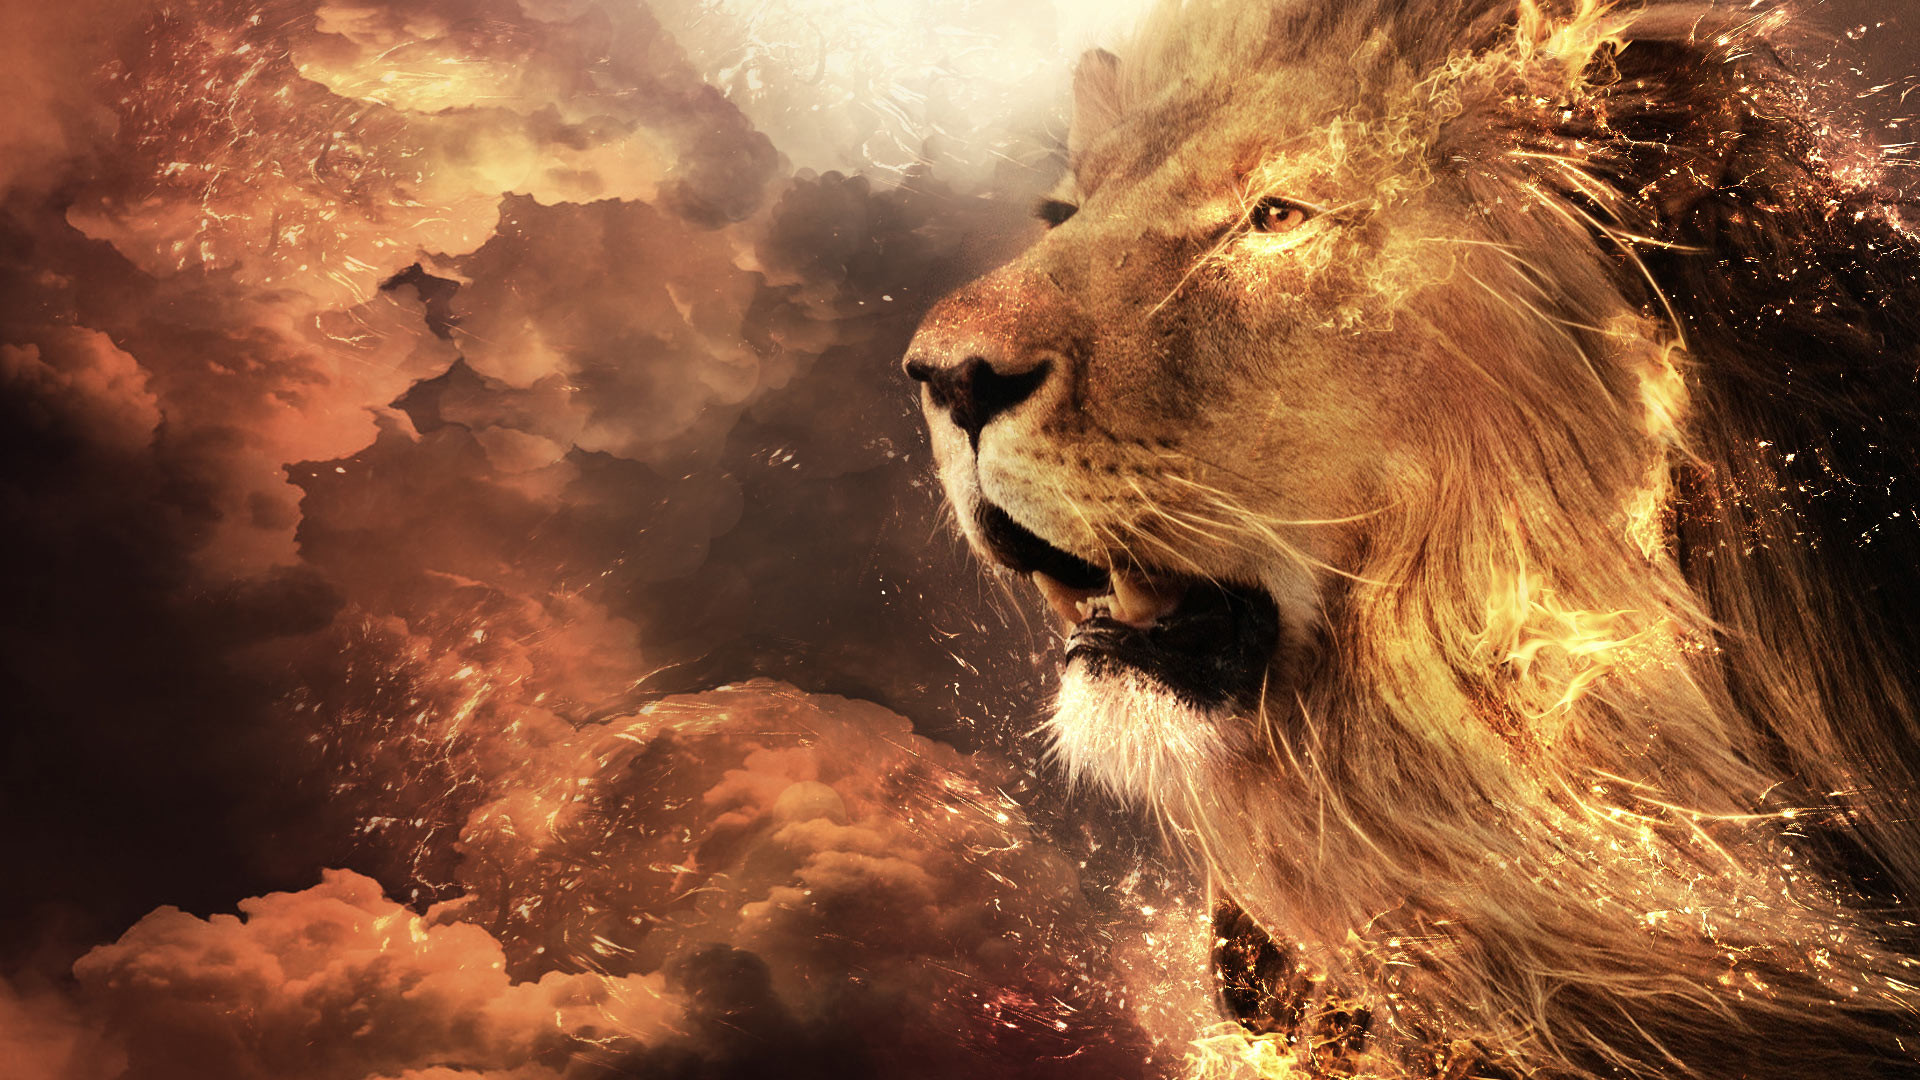 Abstract Fire Lion Face Wallpaper Wide